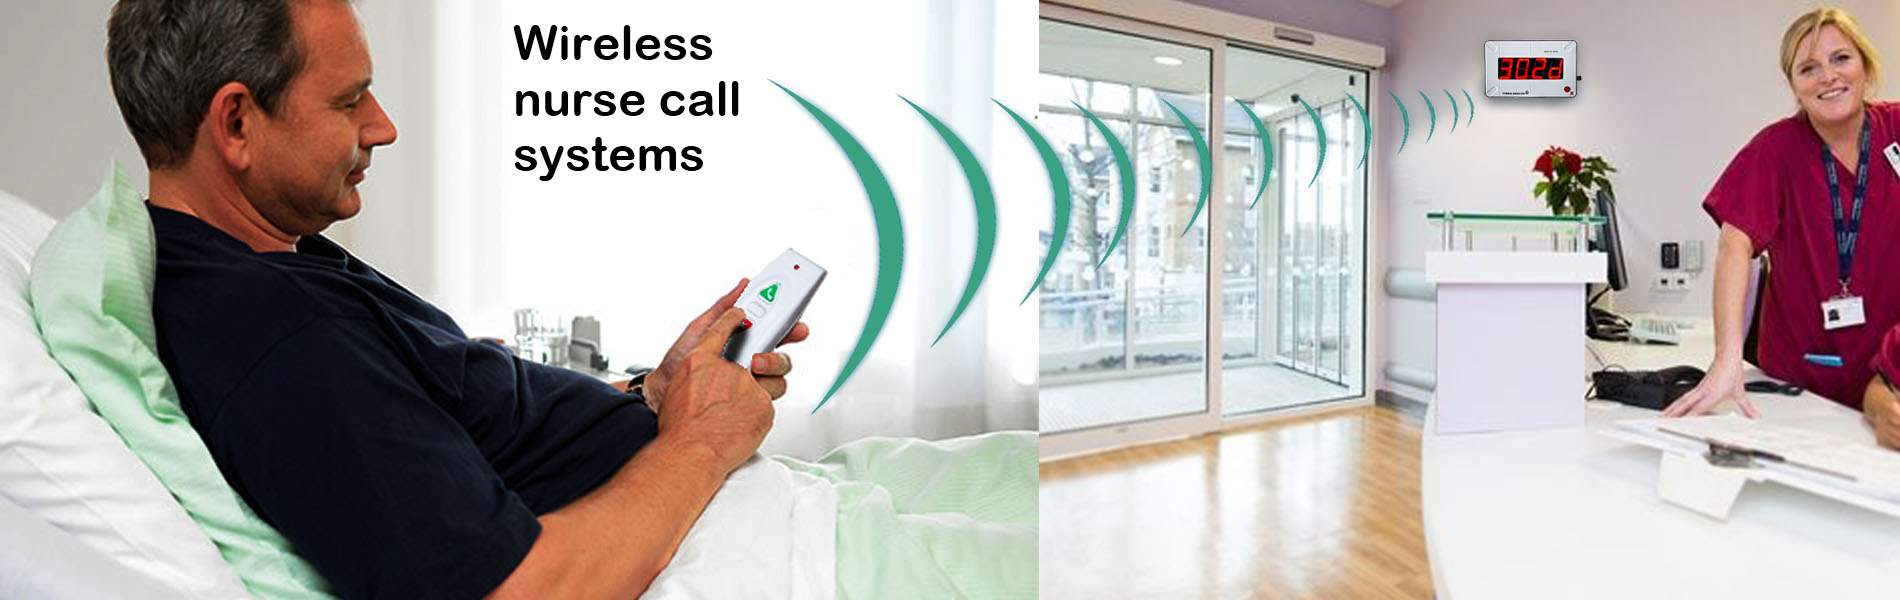 wireless nurse call system